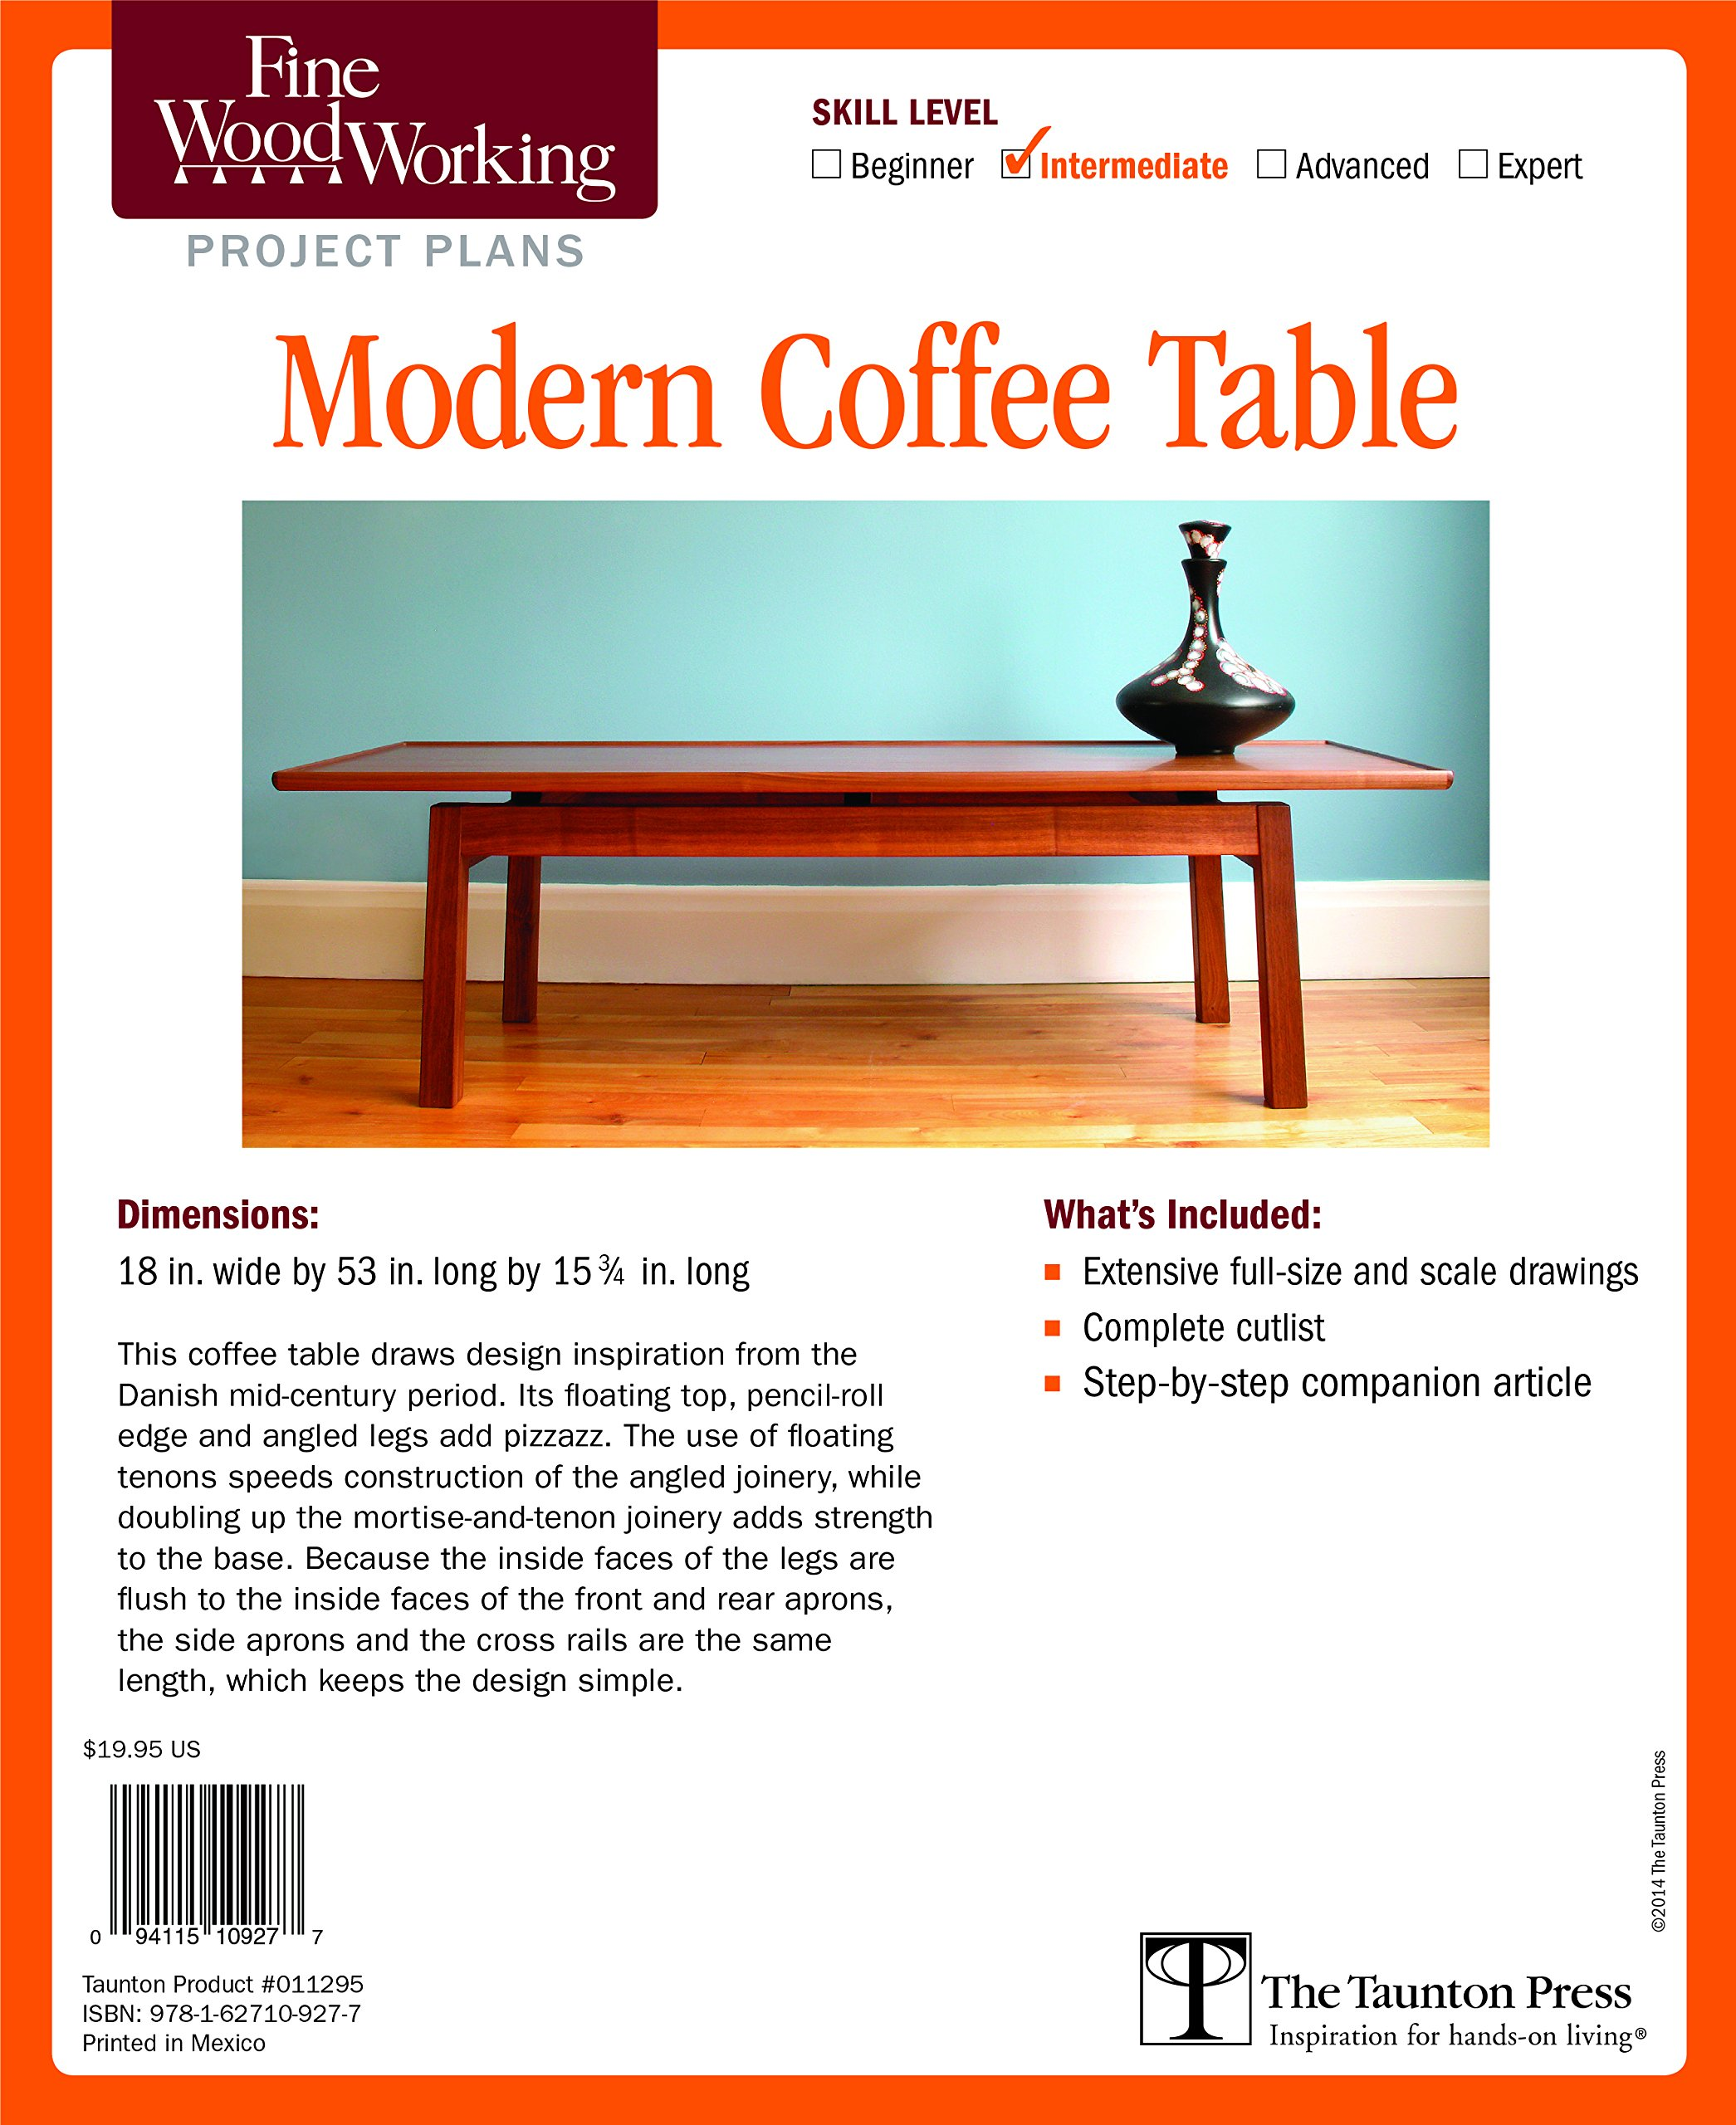 fine woodworking s modern coffee table